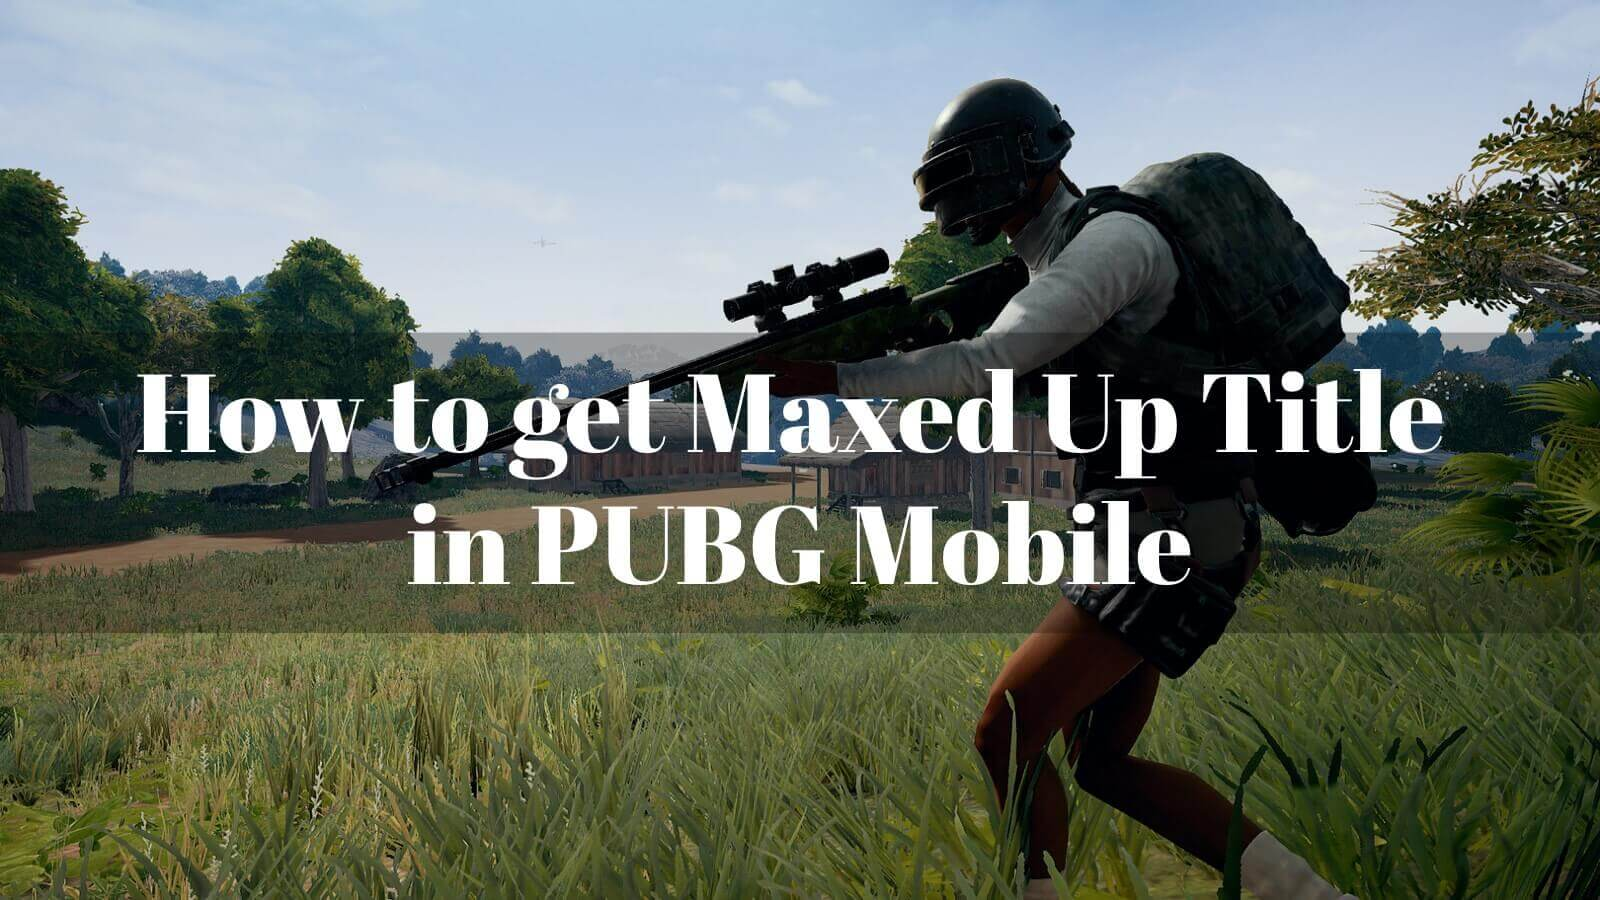 How To Get Maxed Up Title In PUBG Mobile - Android Hire